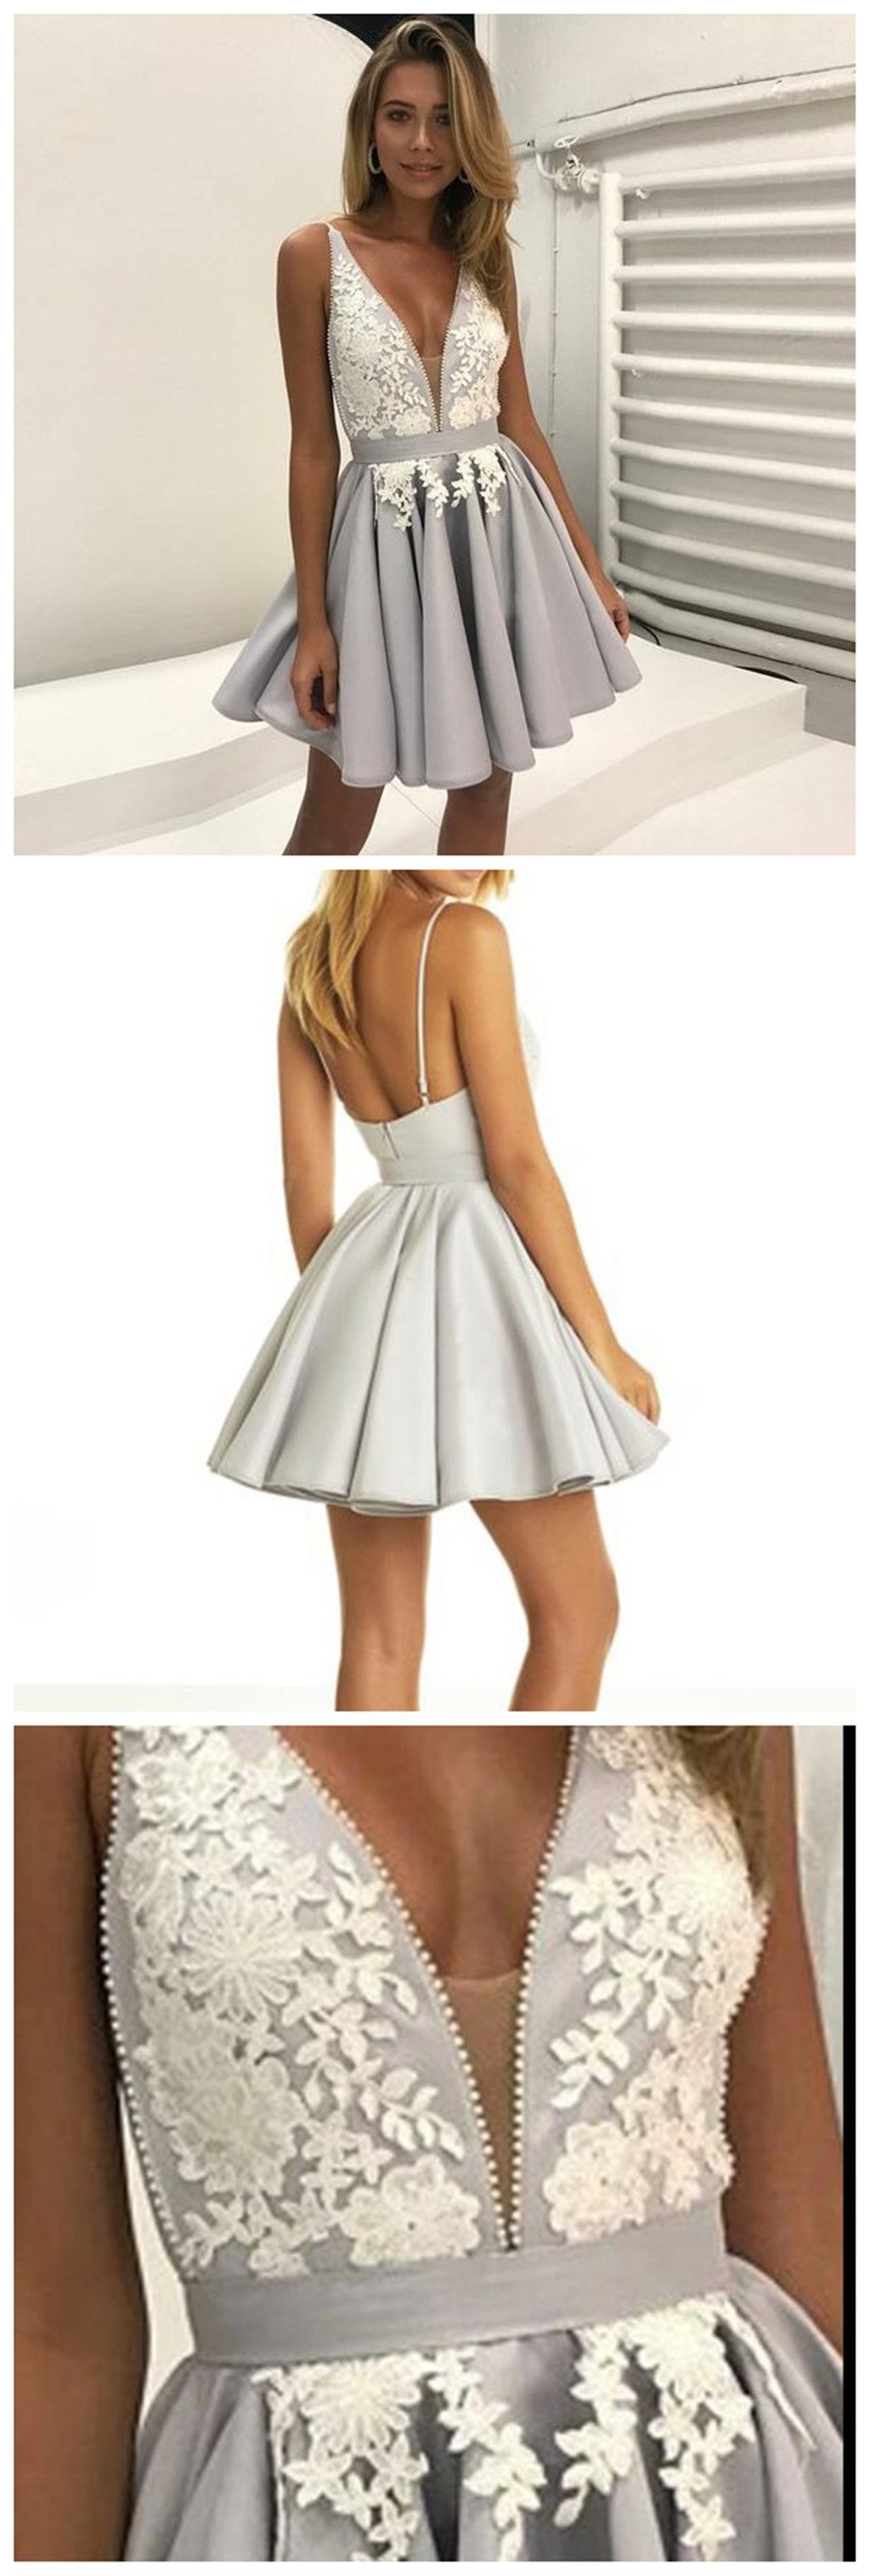 Gray v neckline lace short homecoming prom dresses cheap party prom